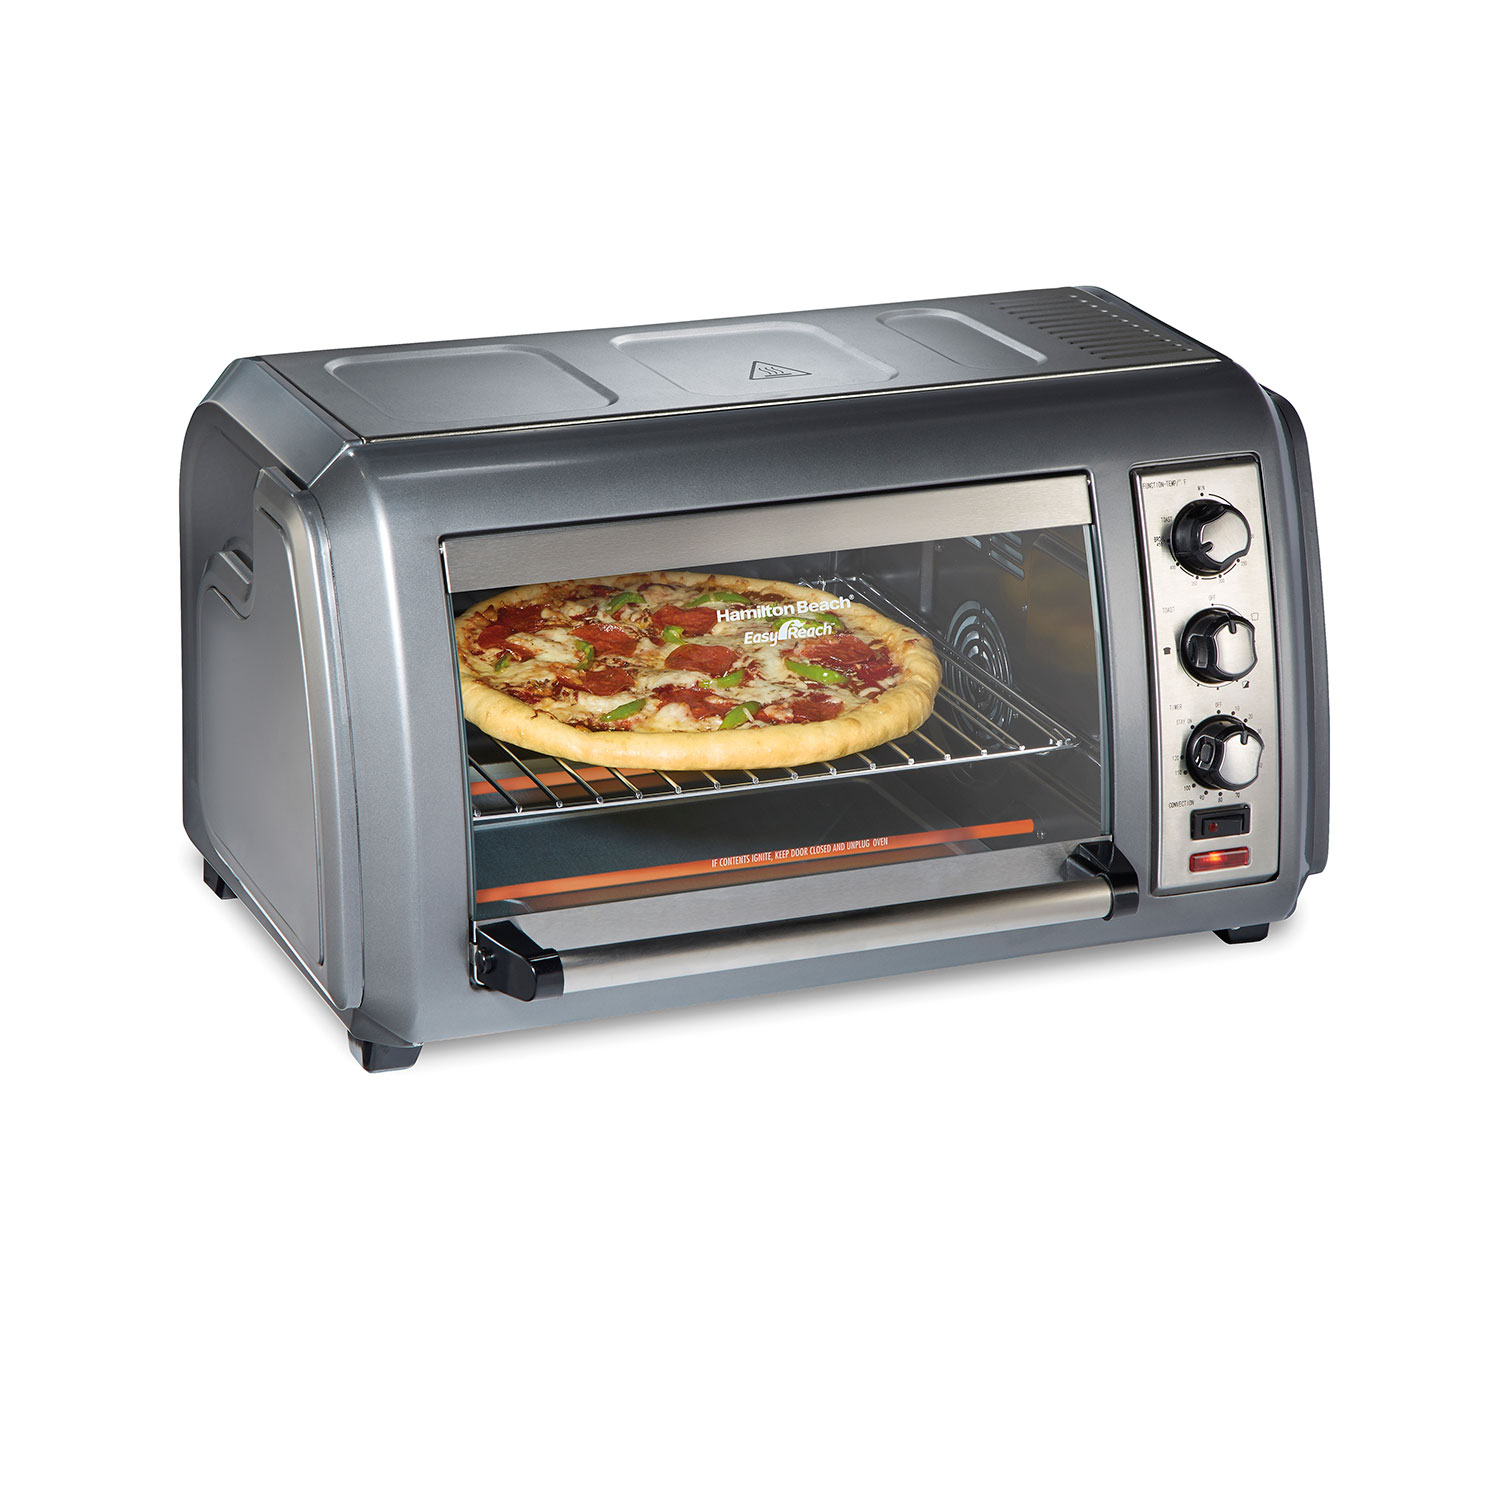 6 Slice Easy Reach® Toaster Oven with Roll-Top Door (31434)